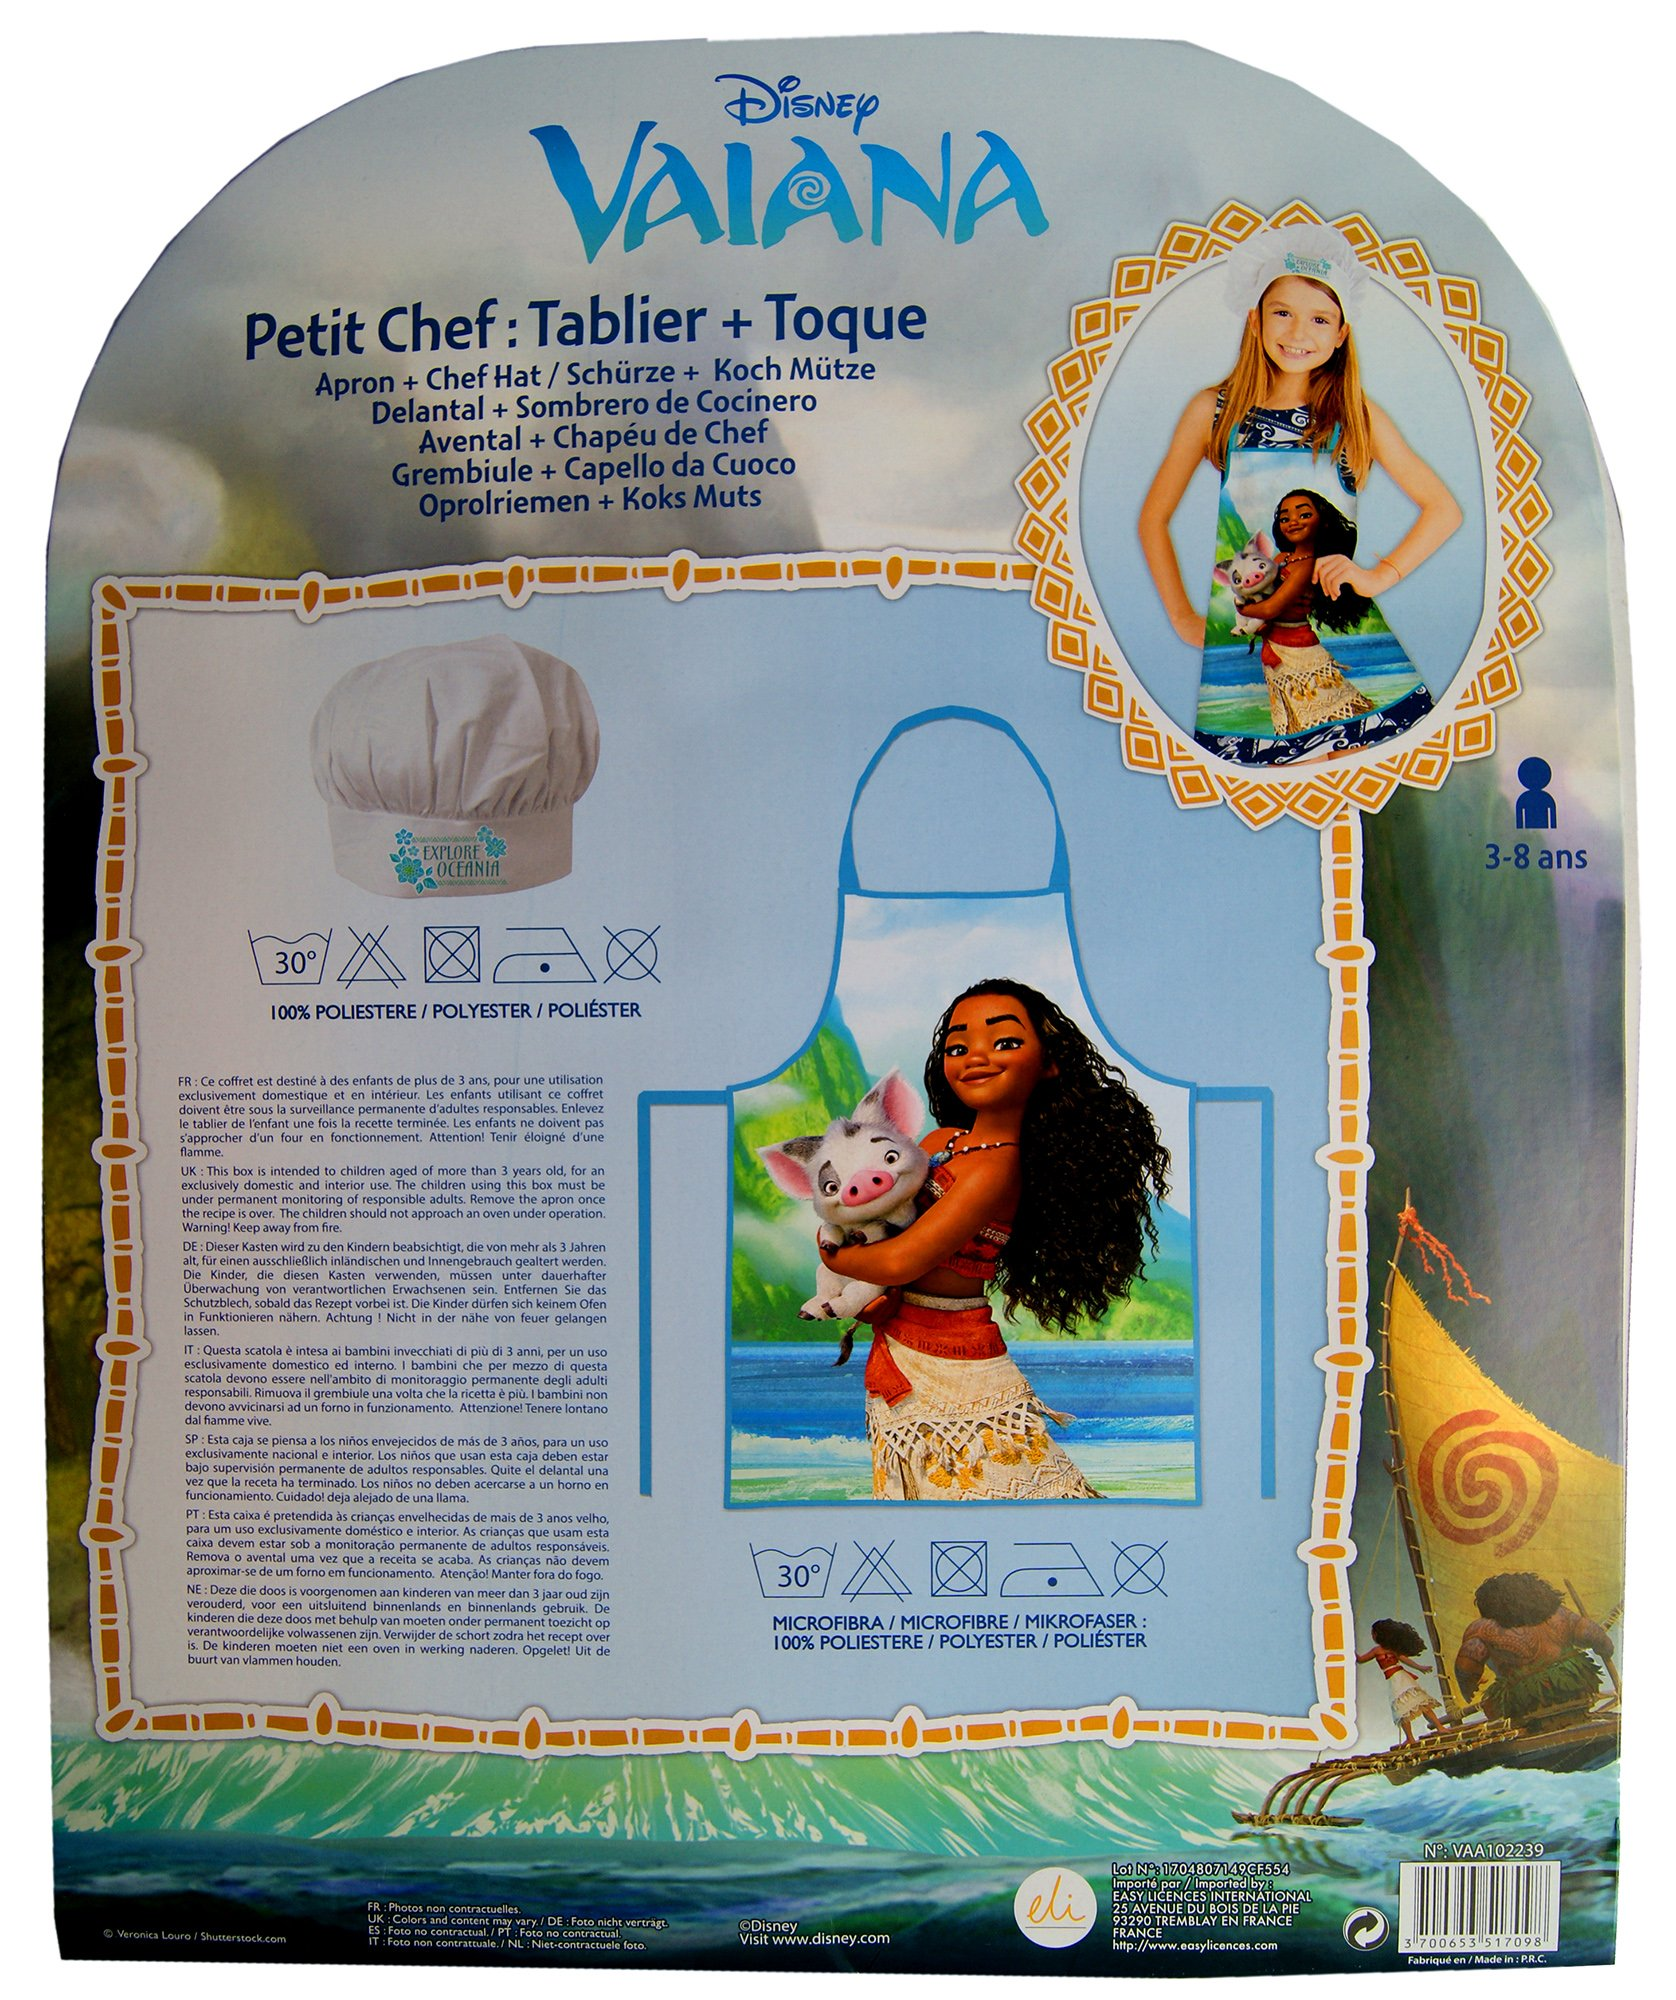 Disney Moana/Vaiana Apron and Chef's Hats Set, Officially Licensed. by Disney (Image #4)